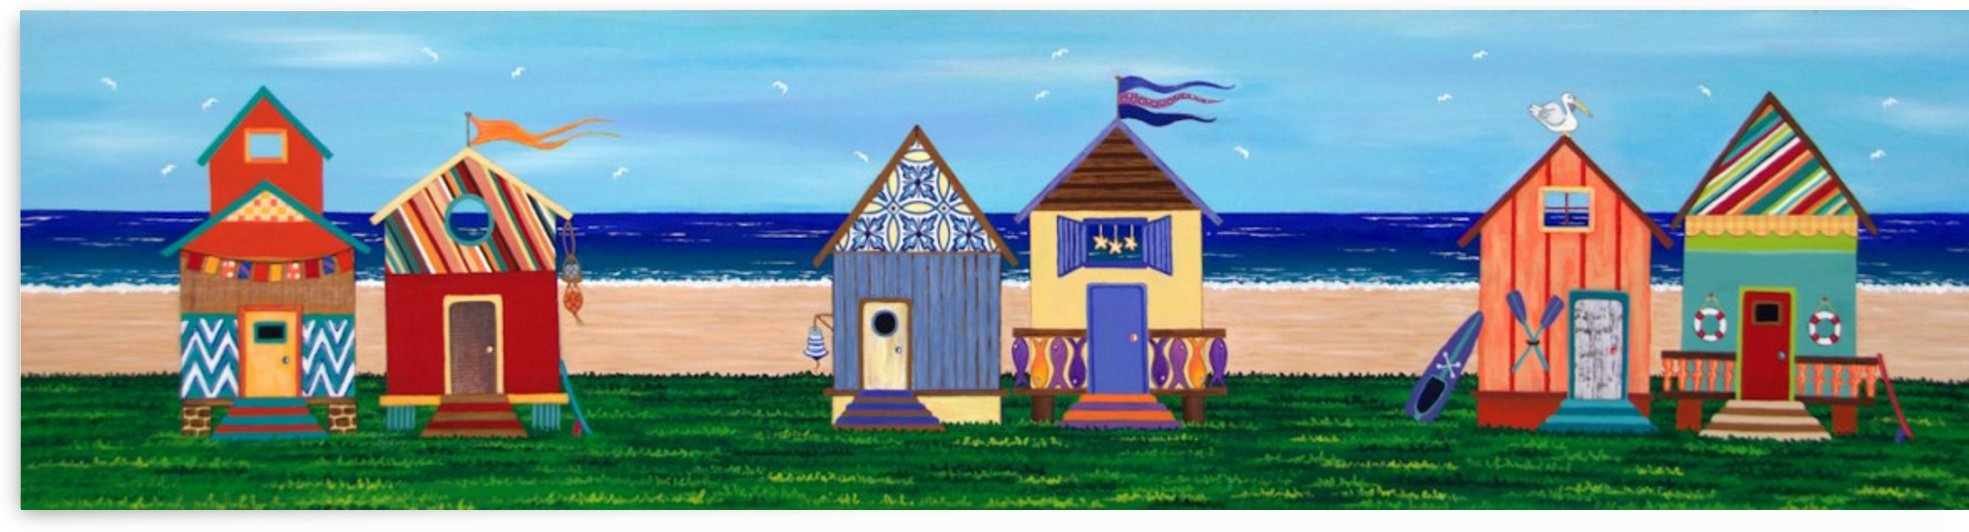 Beach House Holiday by Lisa Frances Judd